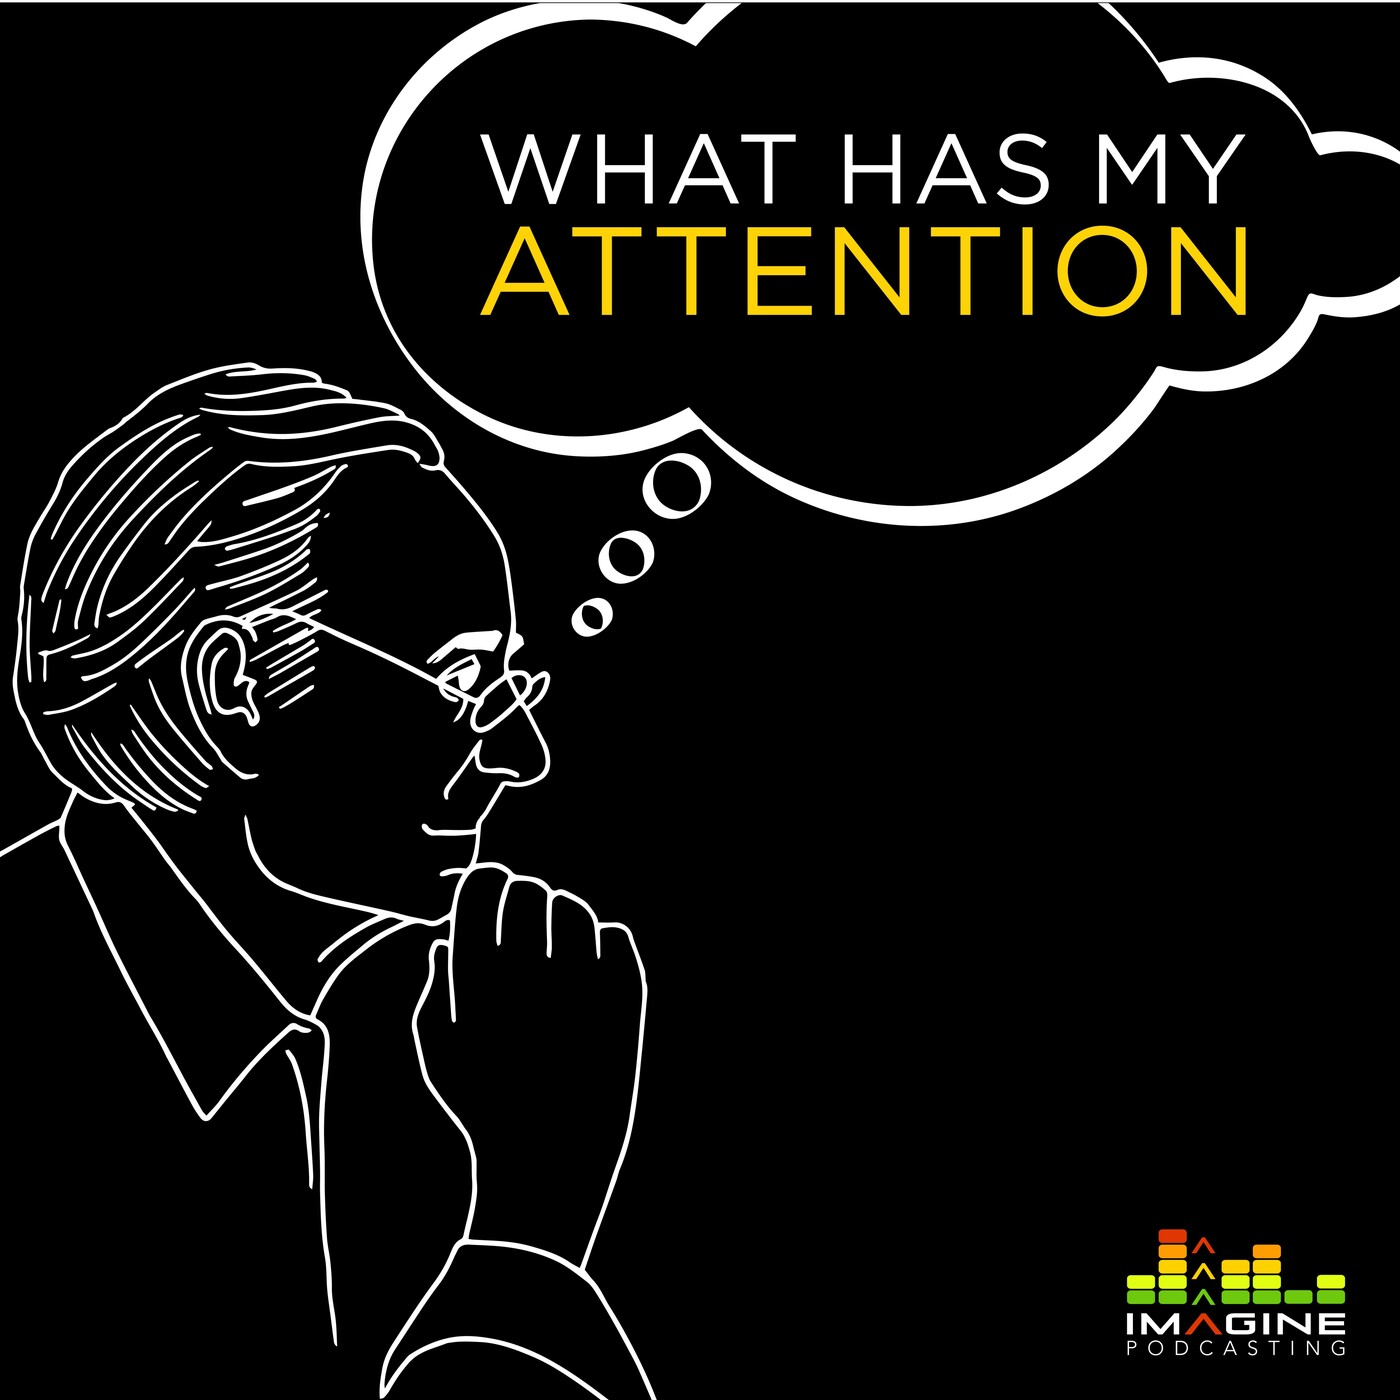 What Has My Attention Album Artwork